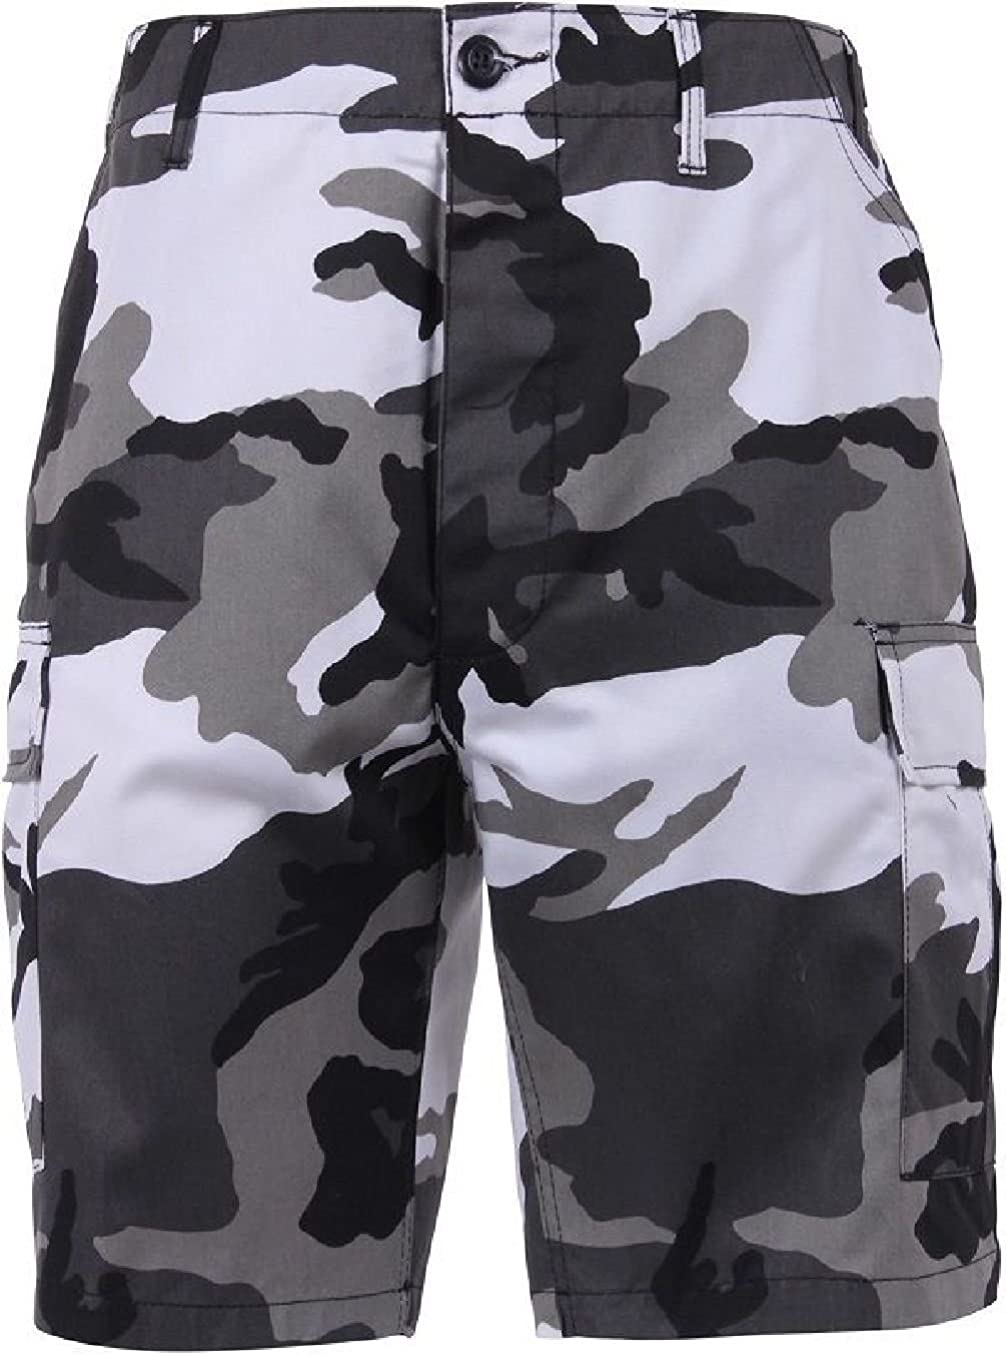 Bellawjace Clothing City Digital Camouflage Military BDU Combat Cargo Camo Army Shorts